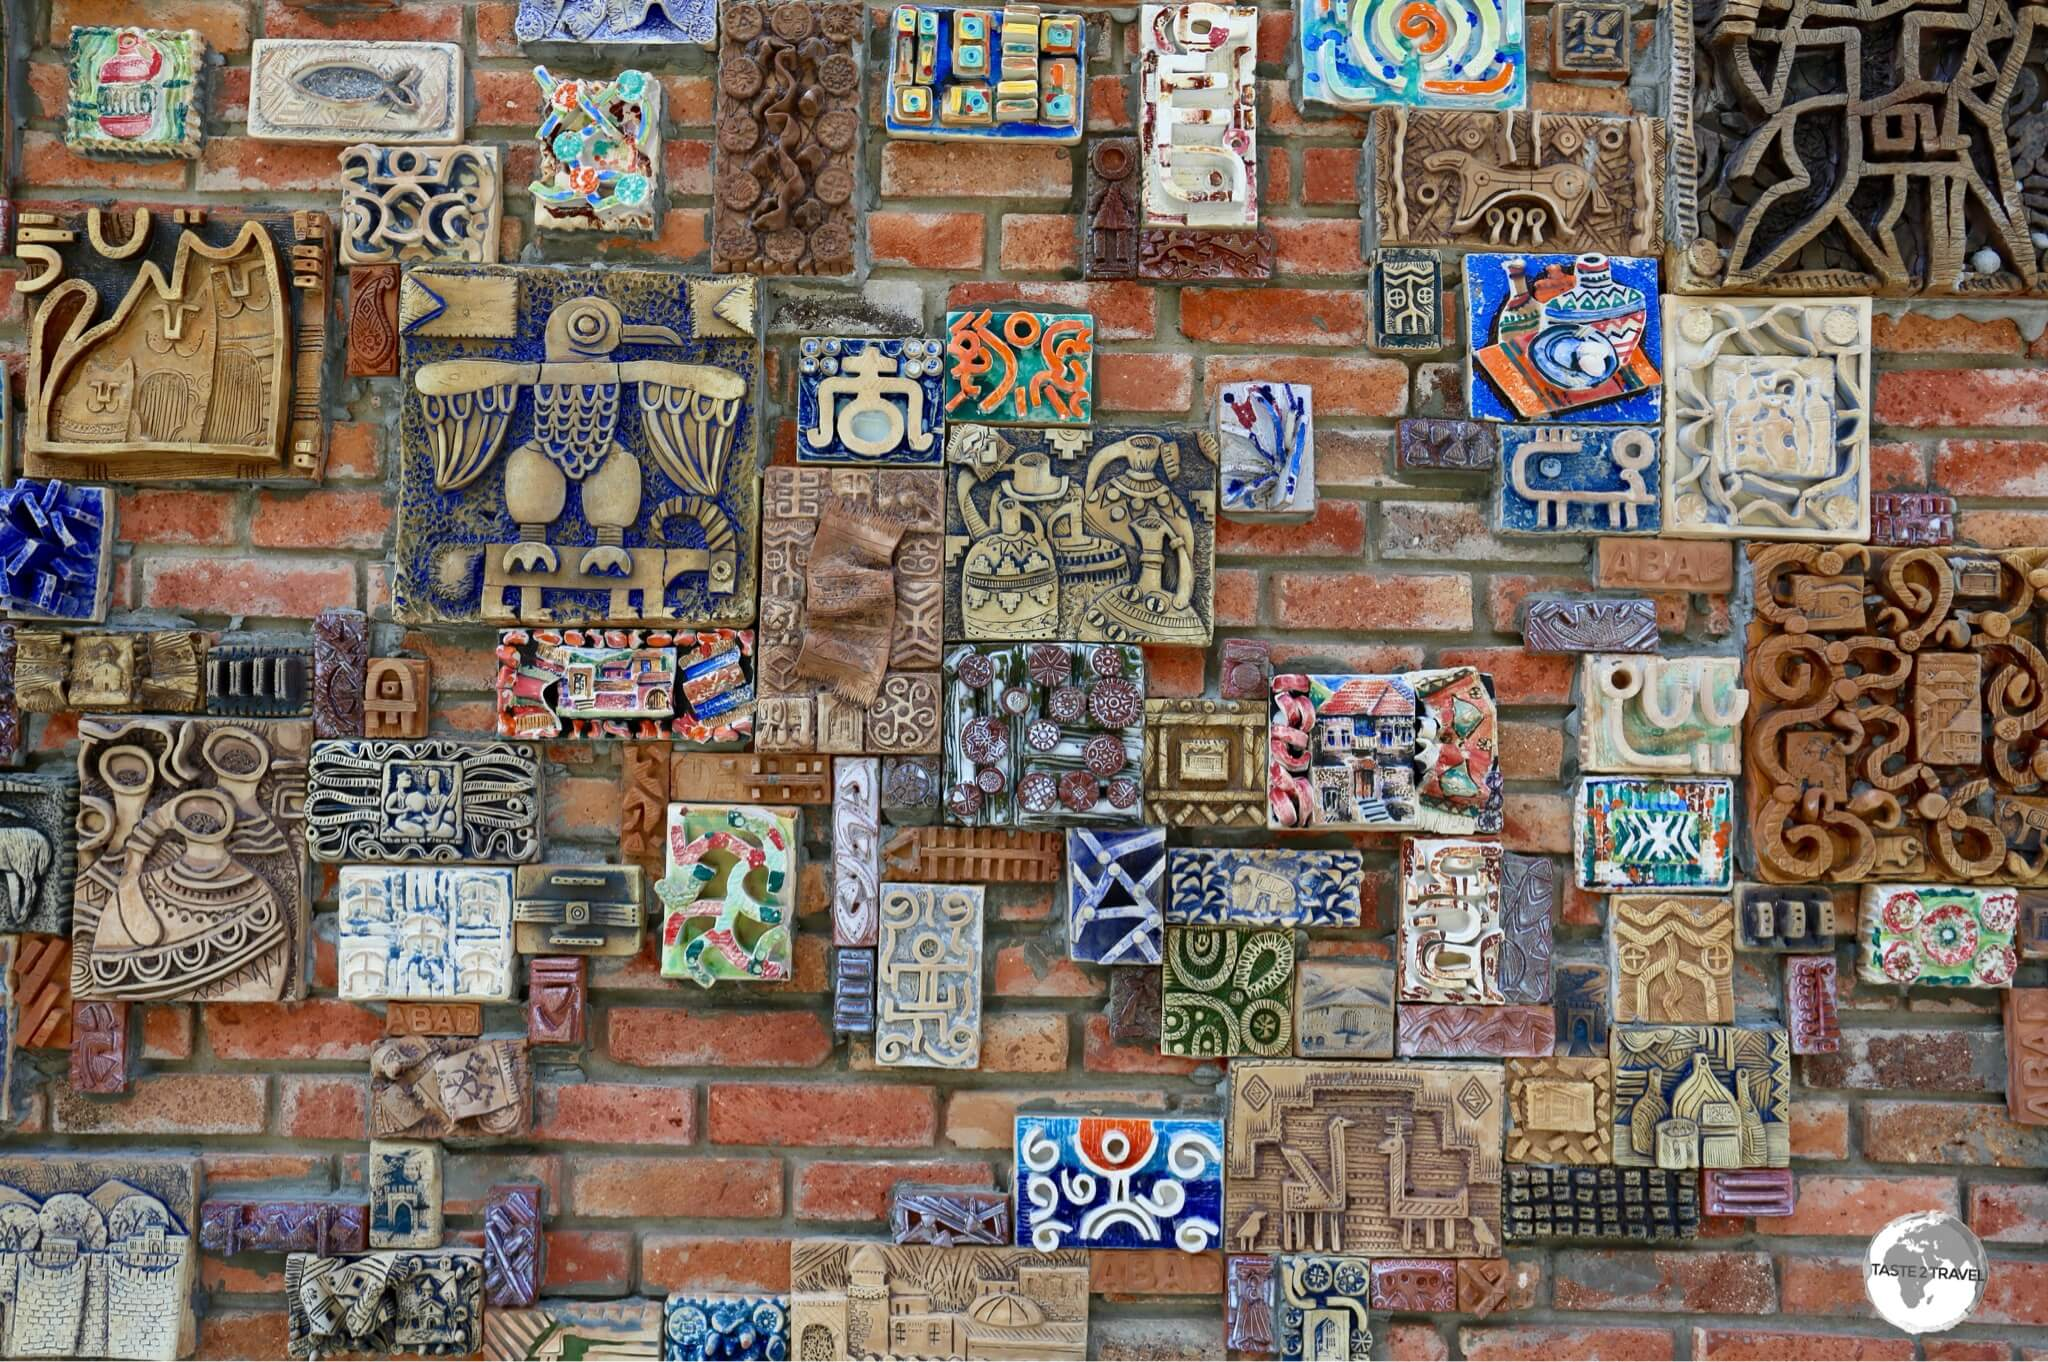 The wall of the arts and craft centre features locally made ceramic artwork.